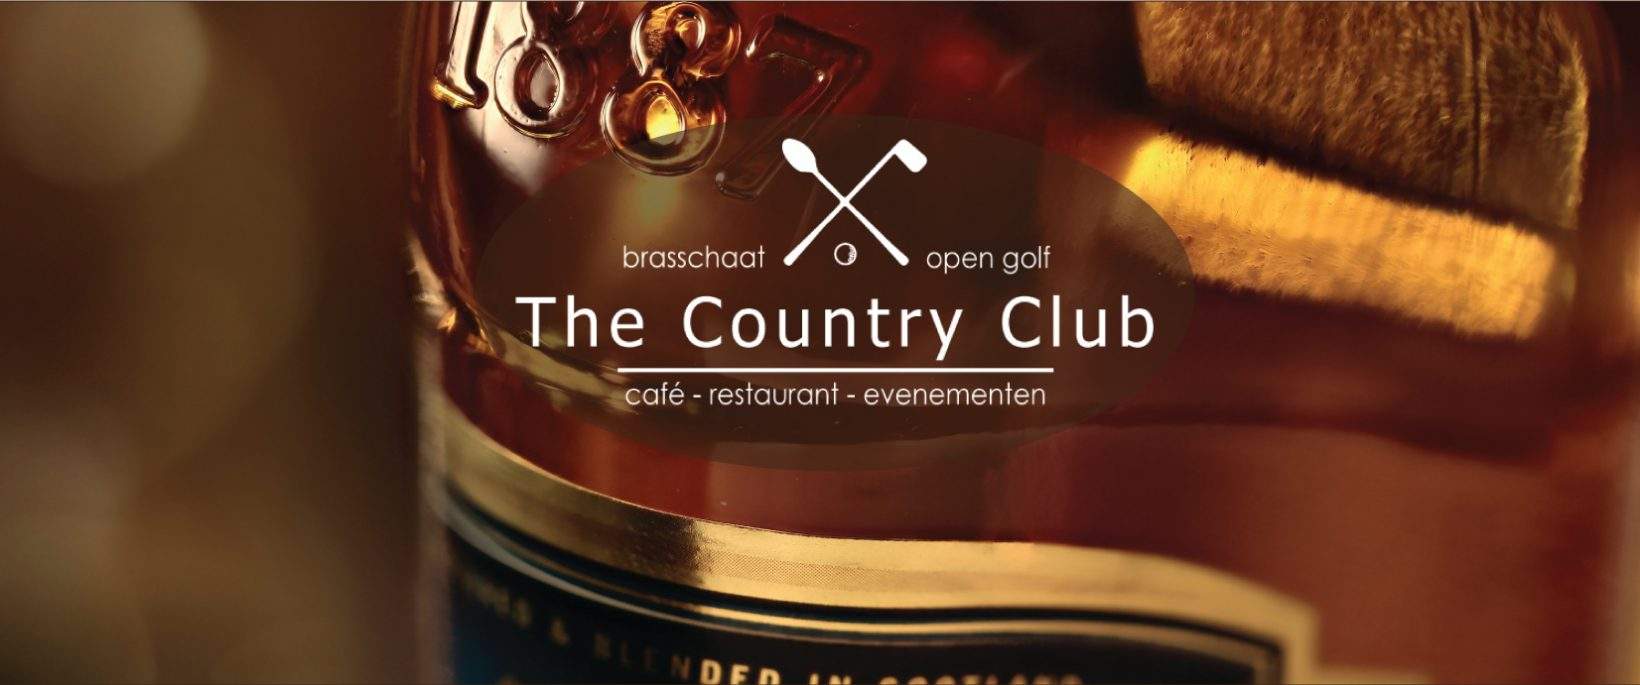 The Country Club